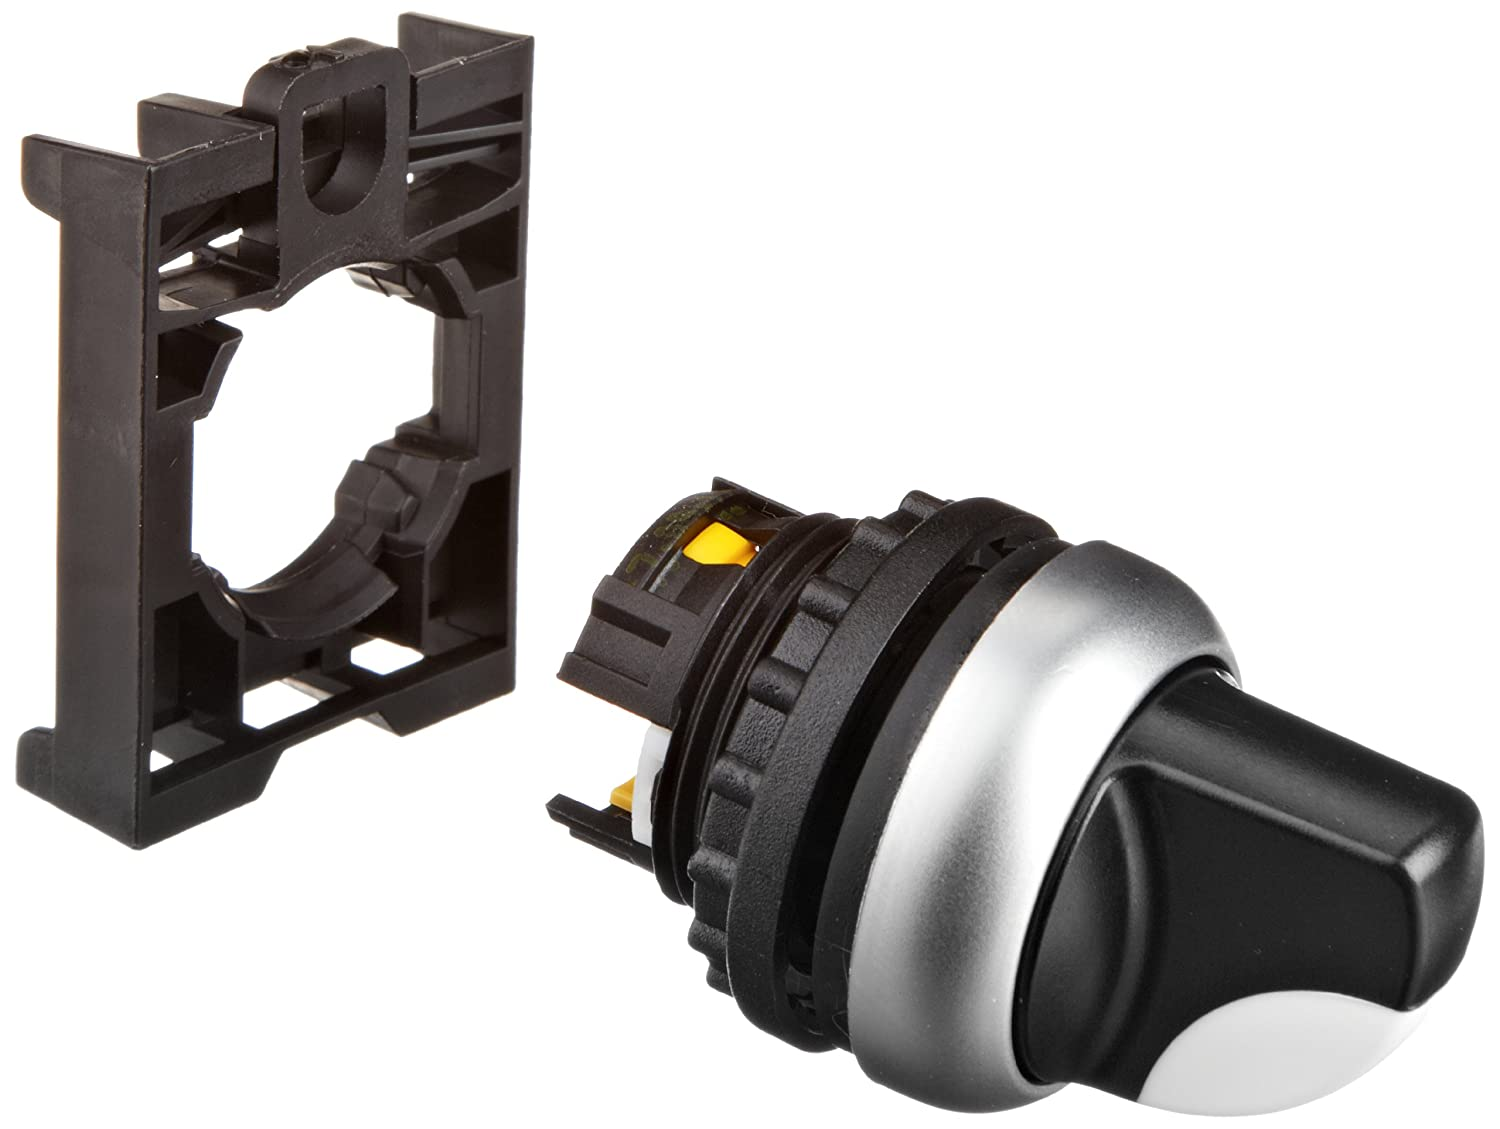 Eaton M22-WK3 Selector Switch, 3 Positions, Lever Actuator Style, Off-On Action, Silver Bezel Color, 45 Degree Turning Radius